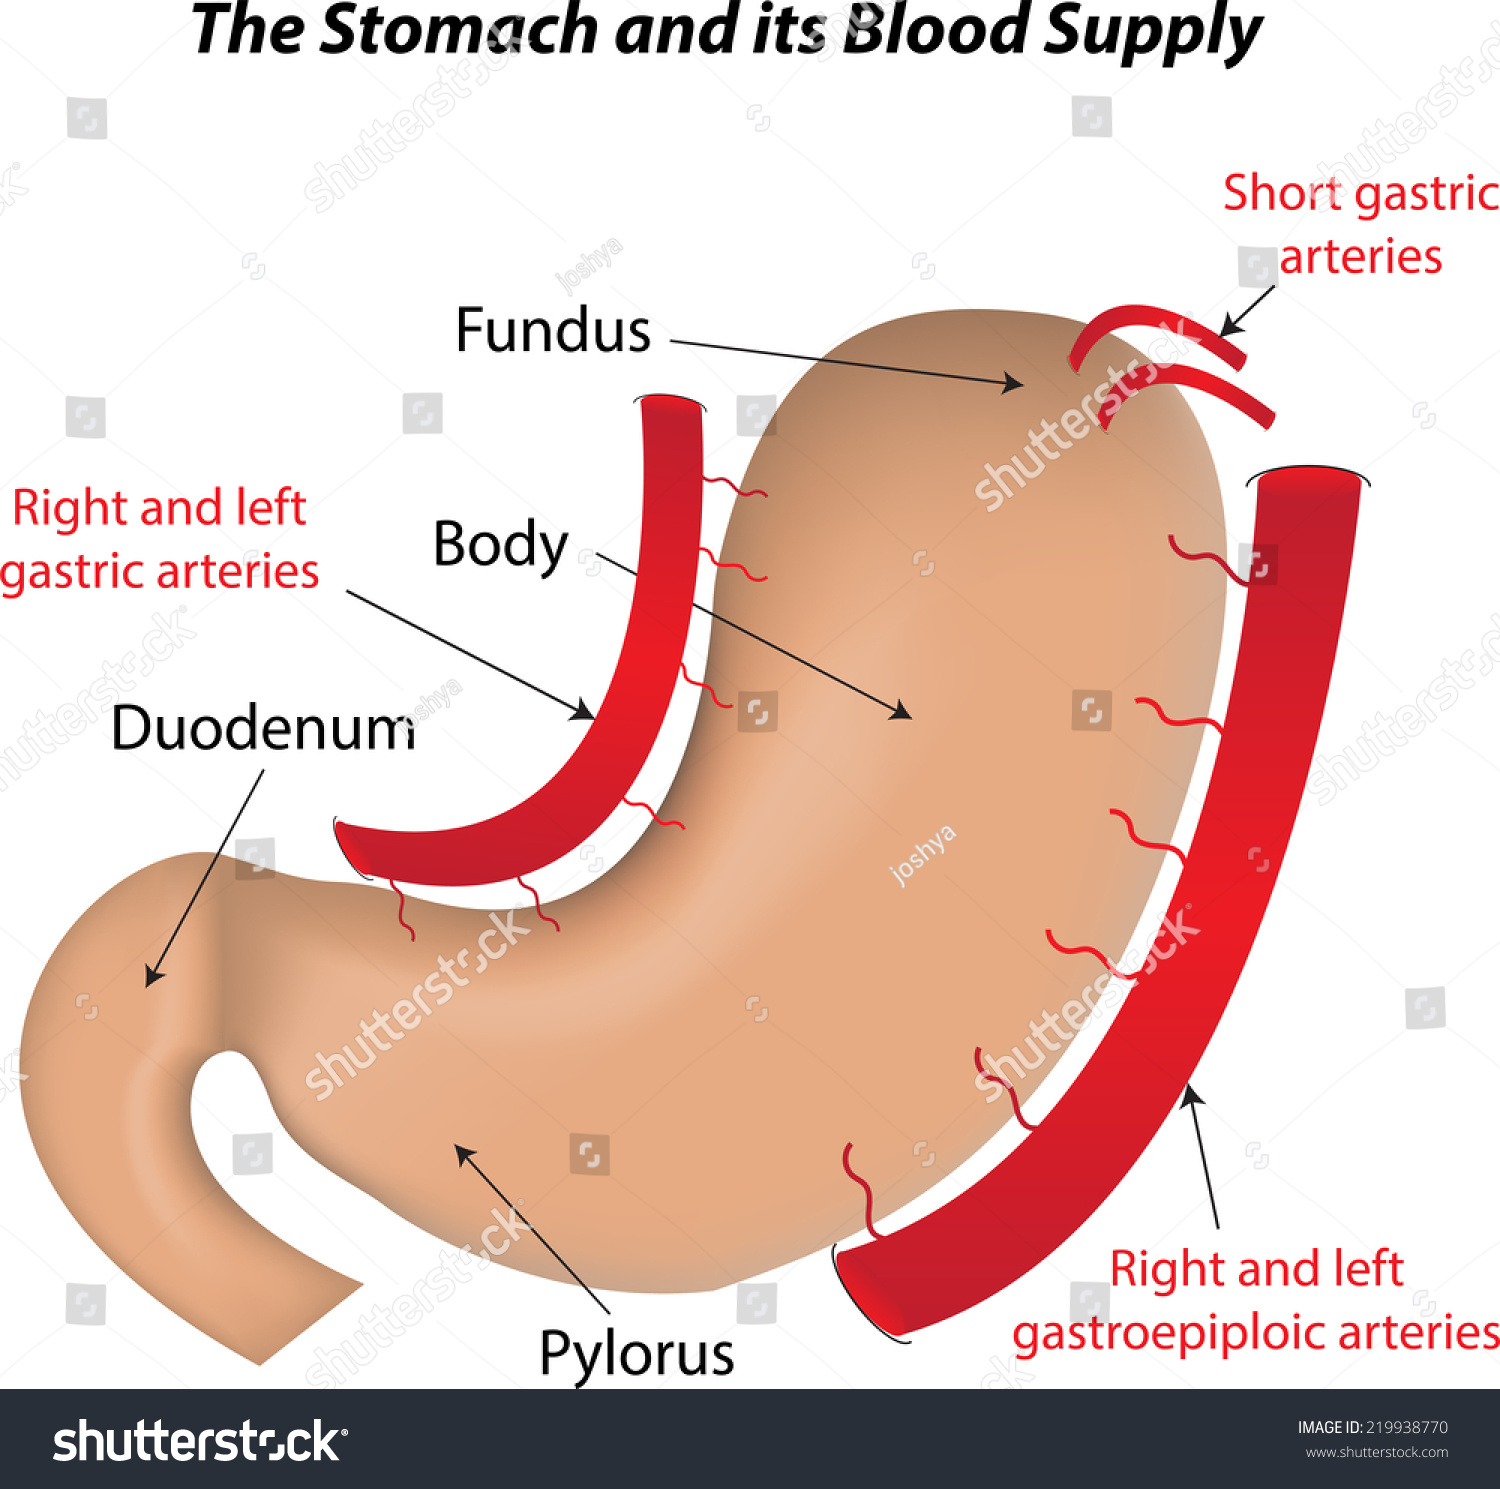 Stomach blood supply labeled diagram stock photo photo vector the stomach and its blood supply labeled diagram ccuart Gallery